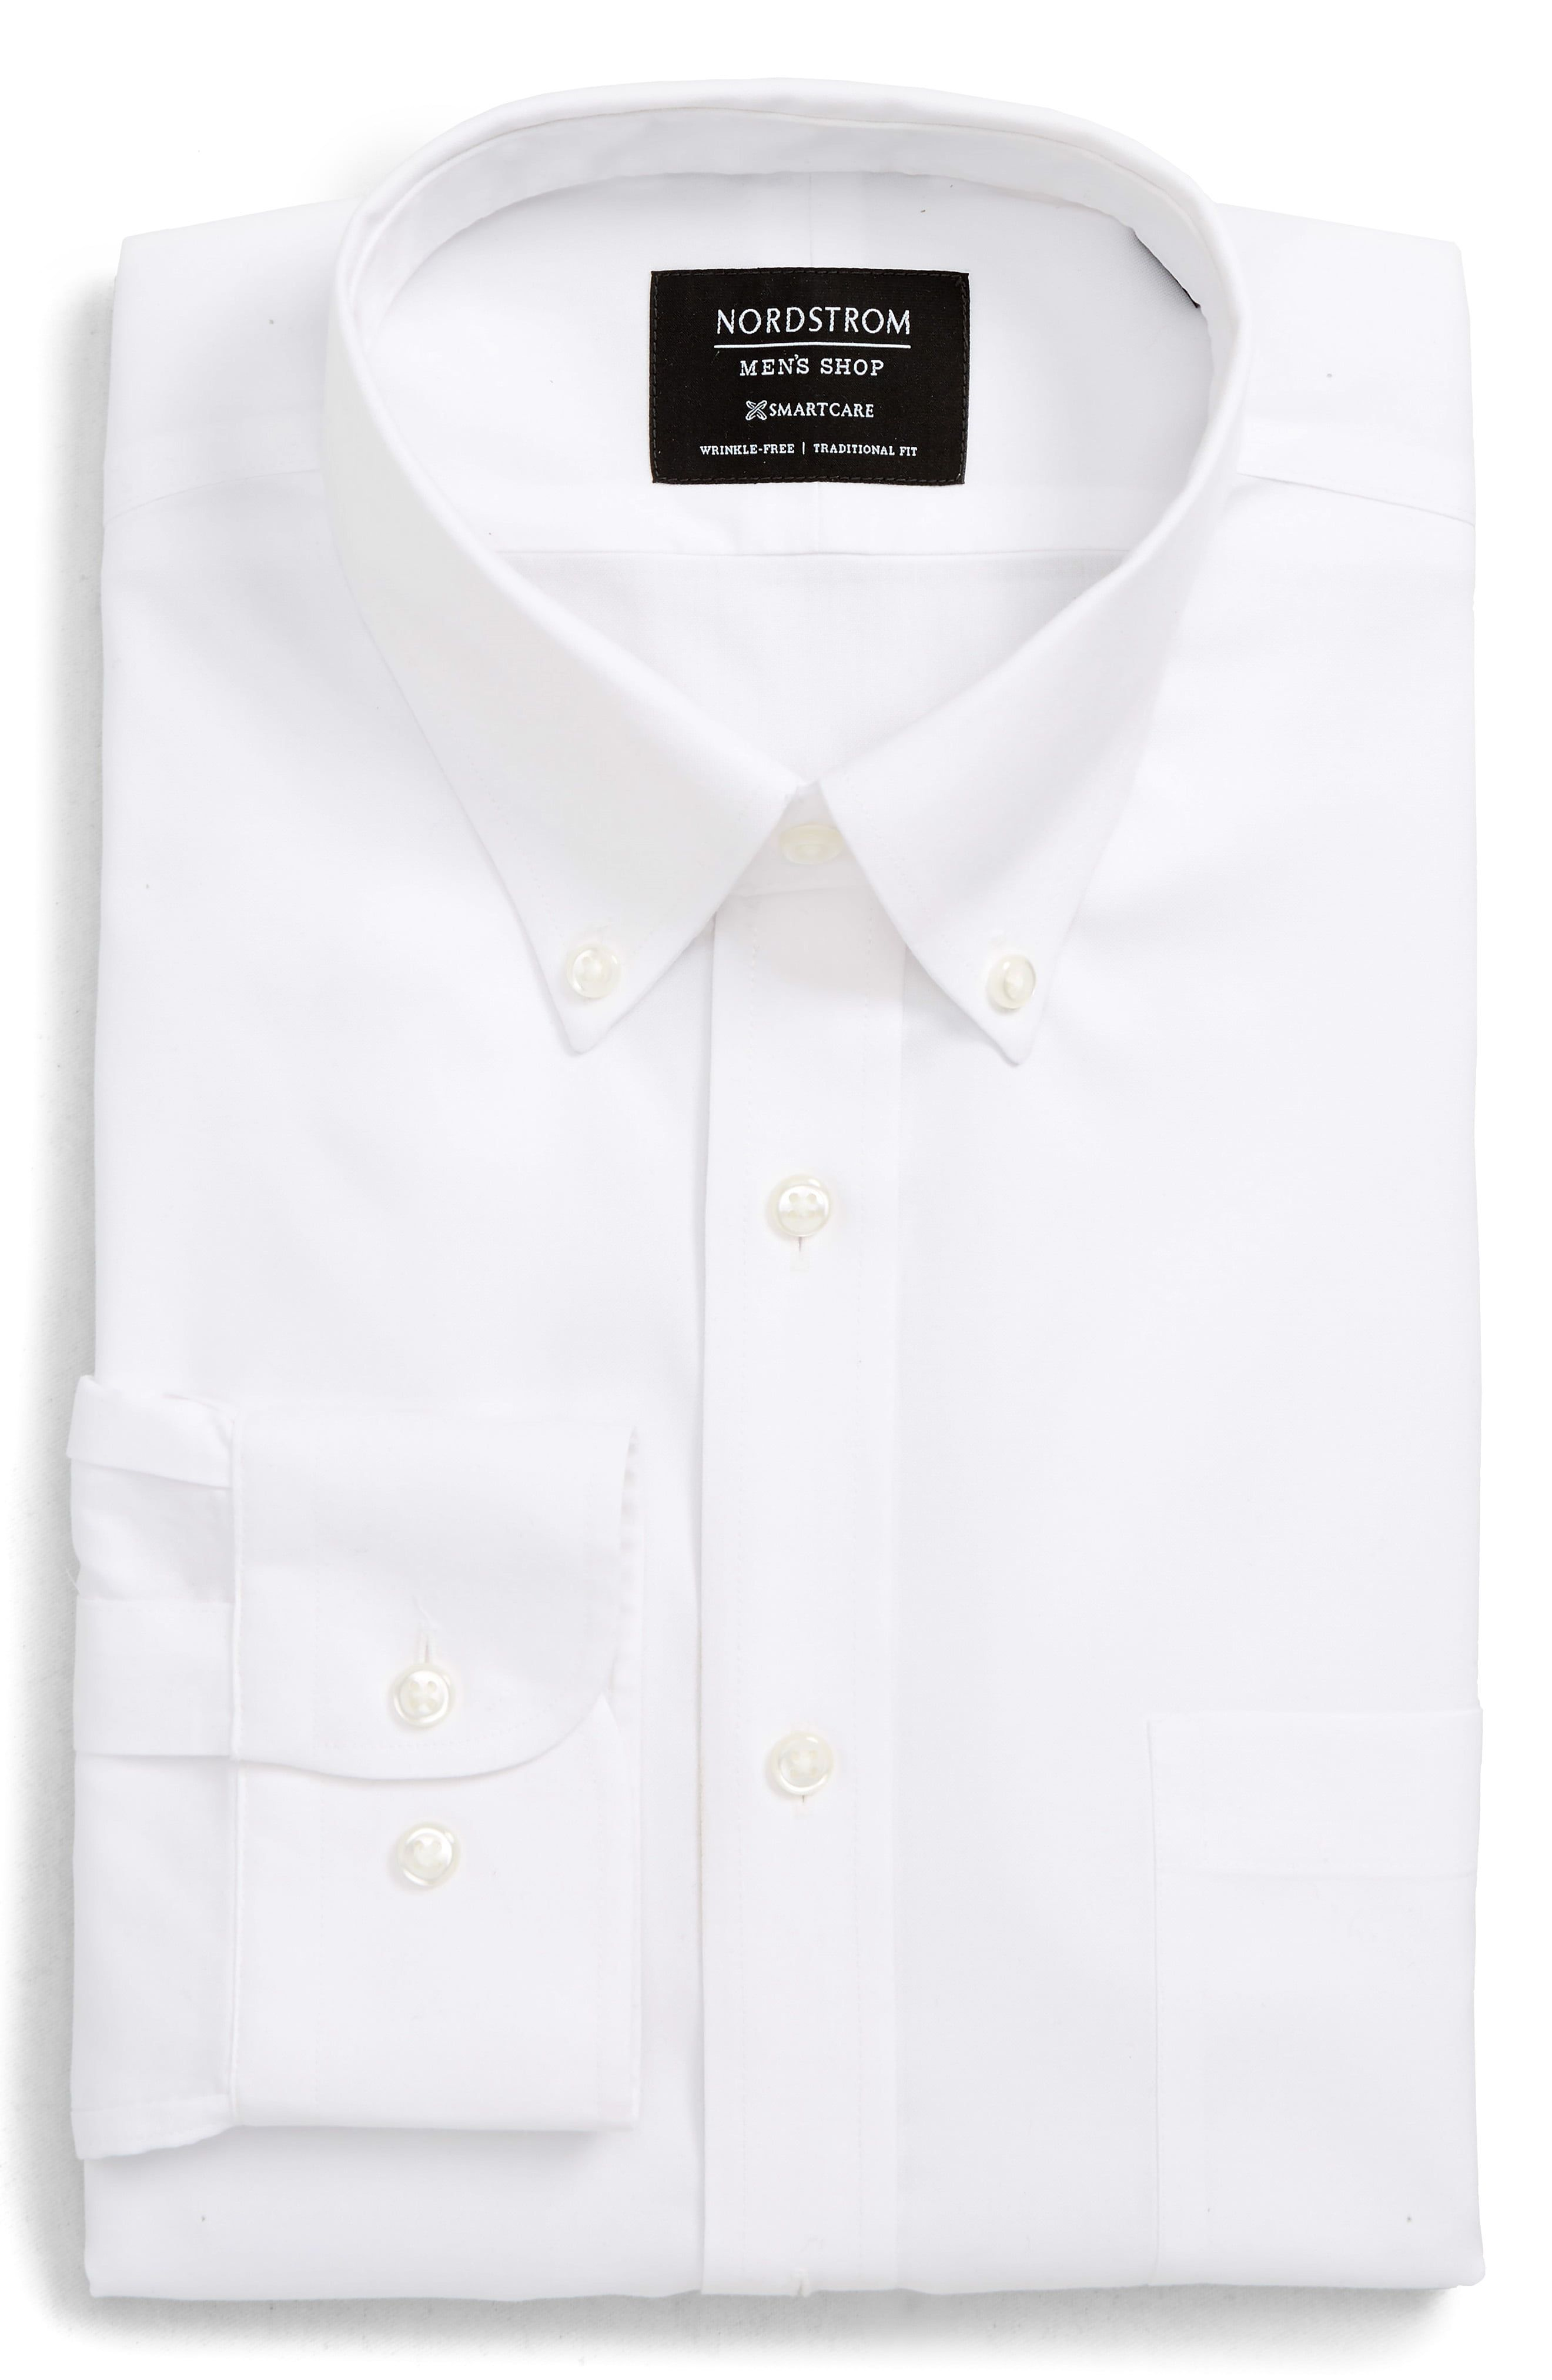 white button up shirt for men